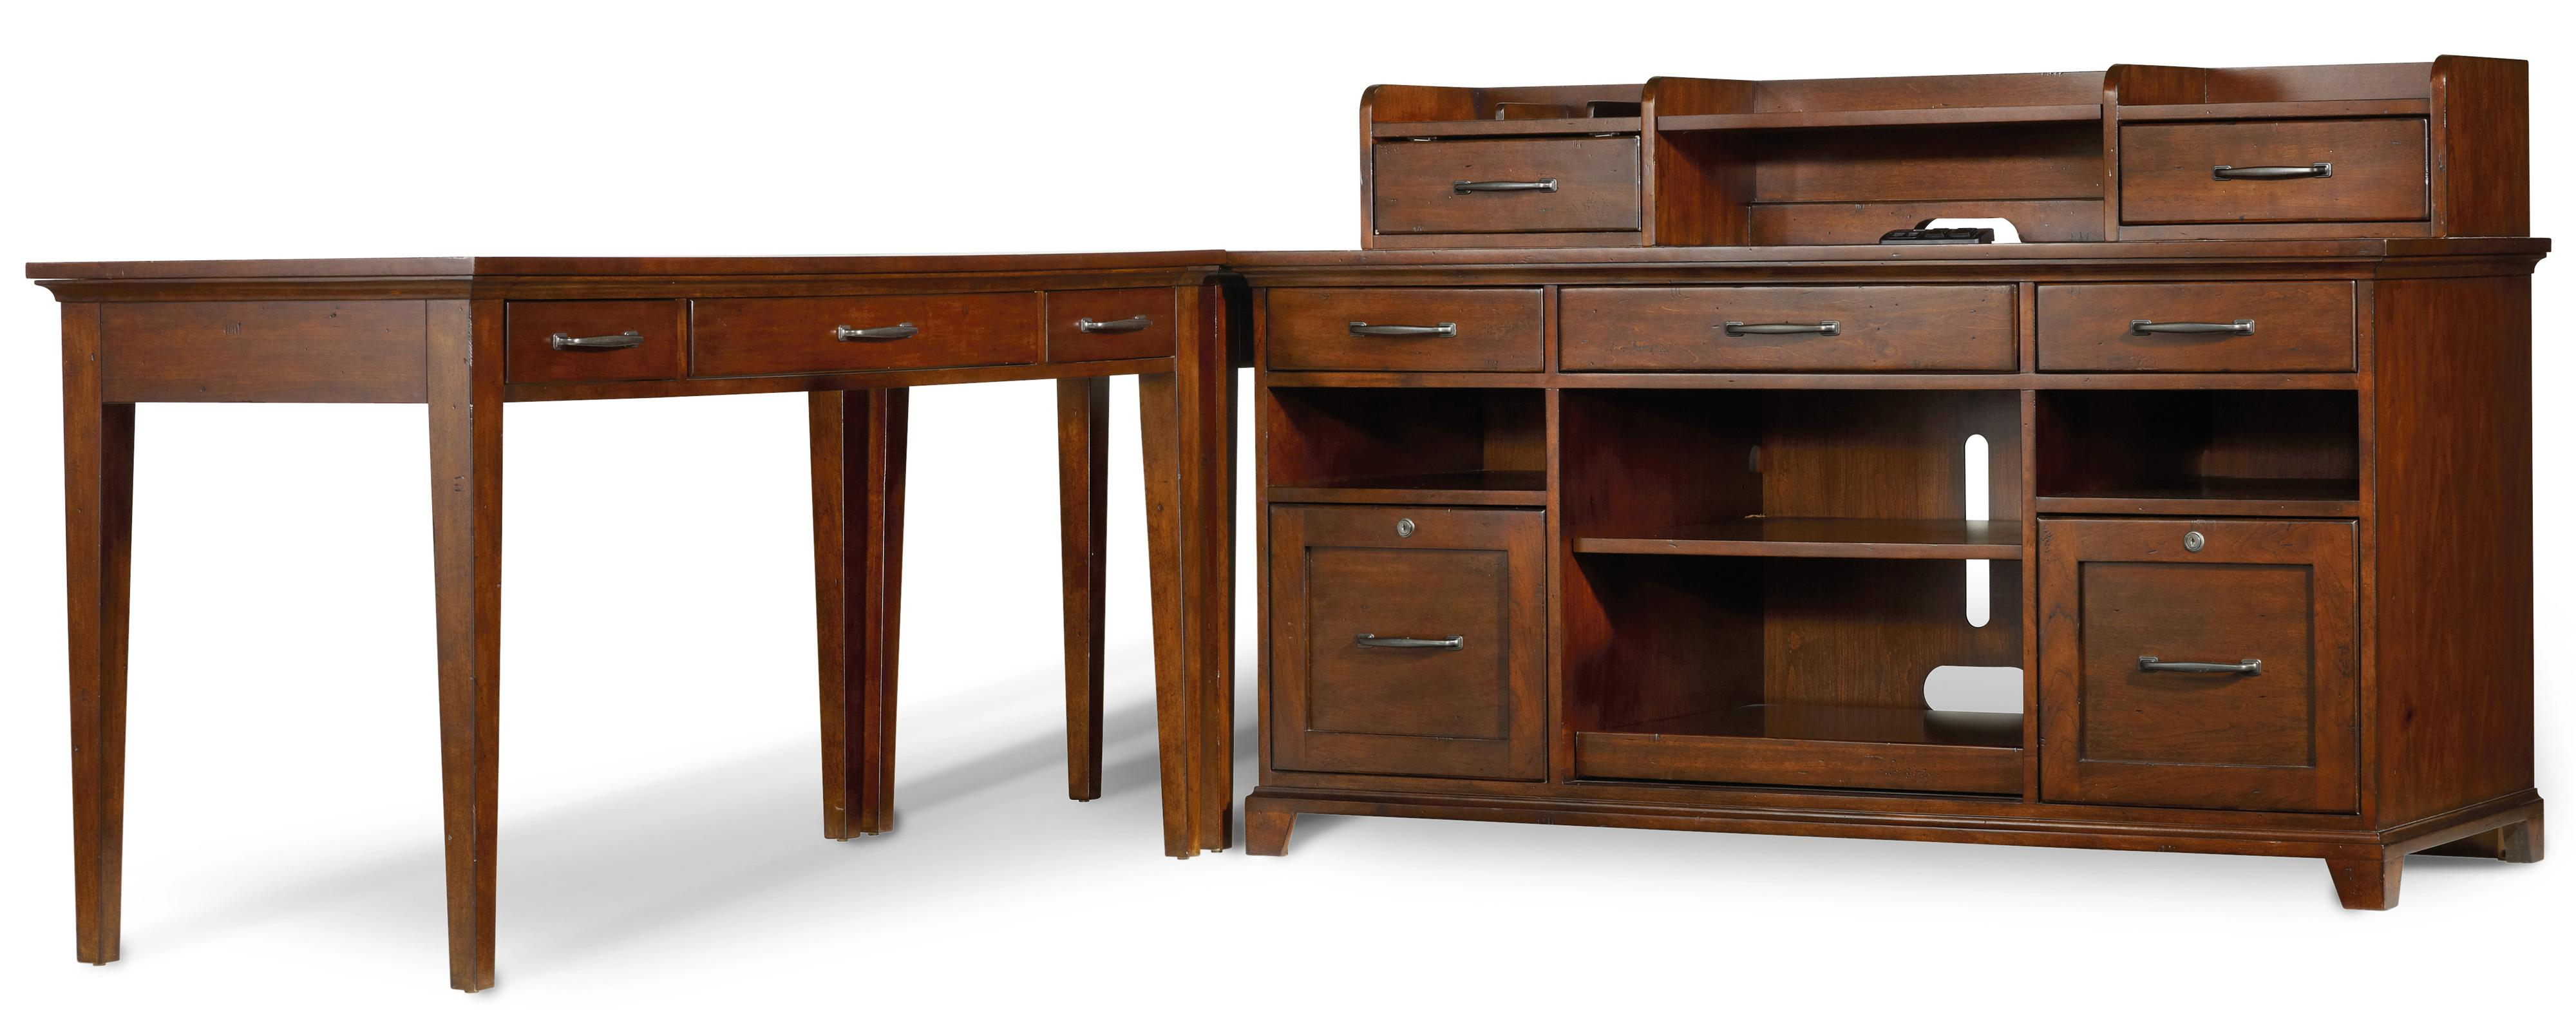 Hooker Furniture Wendover Four Piece L-Shaped Office Unit - Item Number: 1037-11364+11367+11484+11458